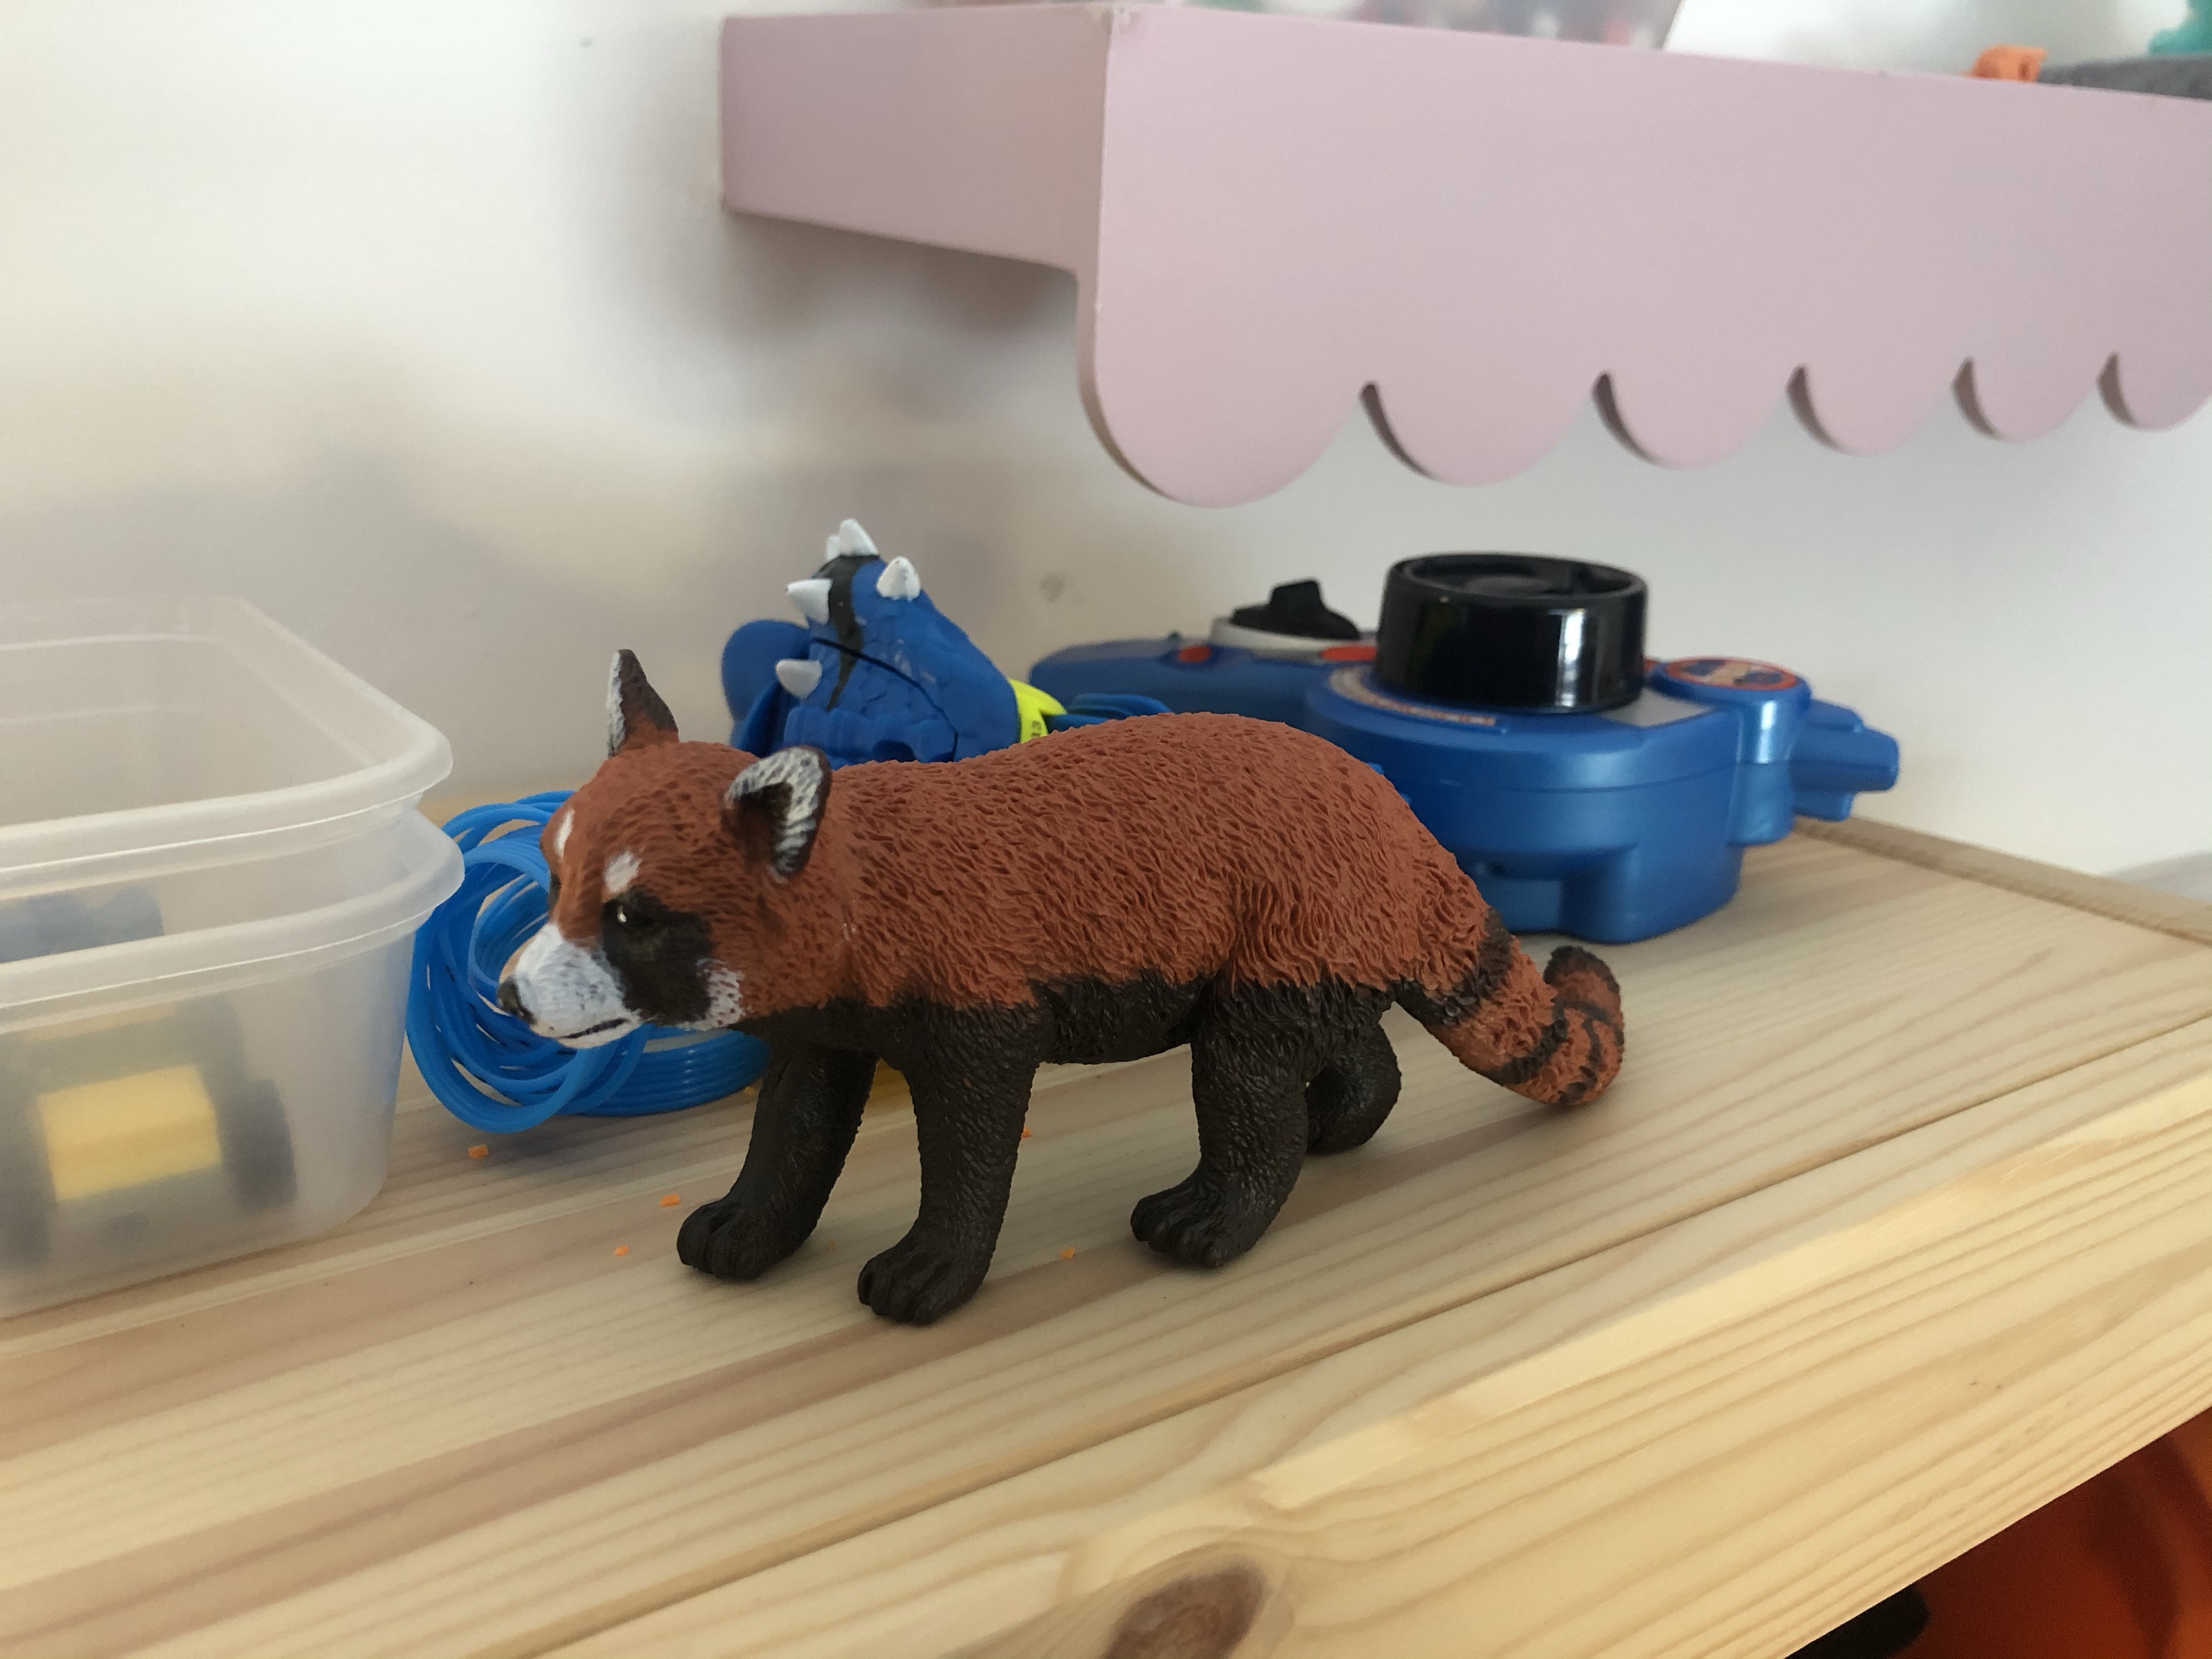 Red panda figure on a shelf with other toys.